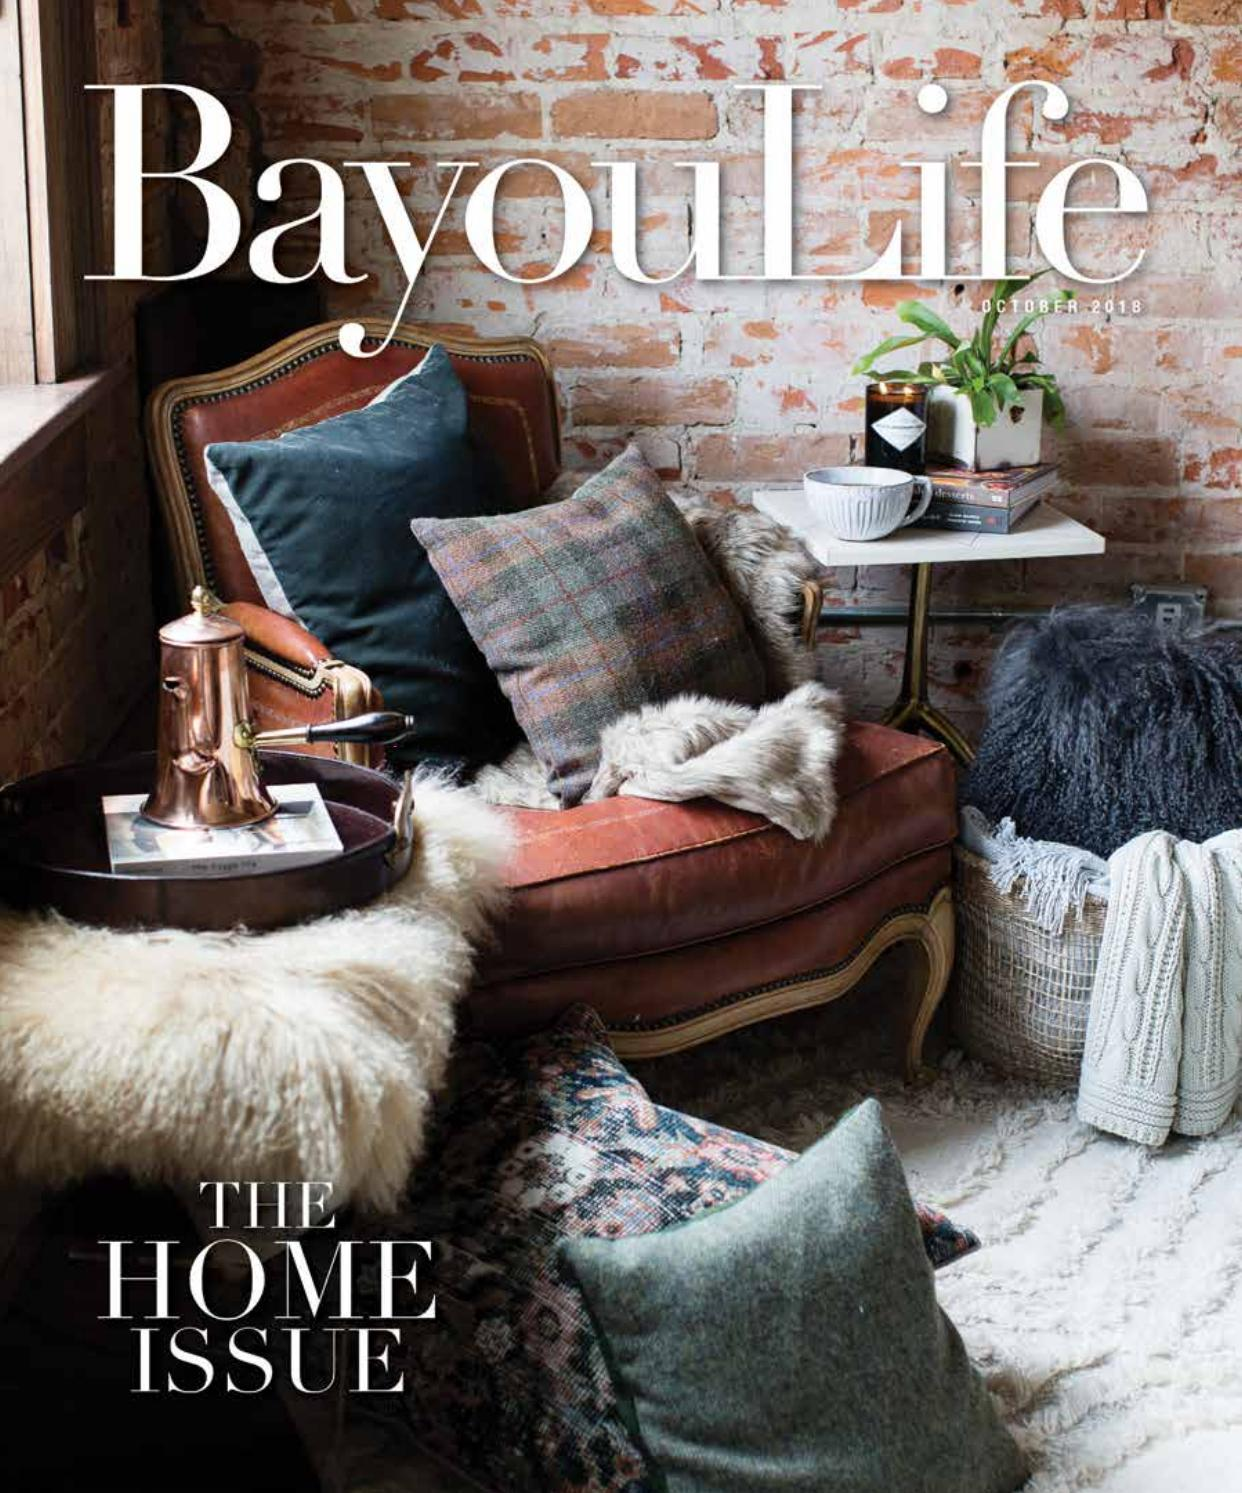 BayouLife Magazine October 2018 by BayouLife Magazine - issuu